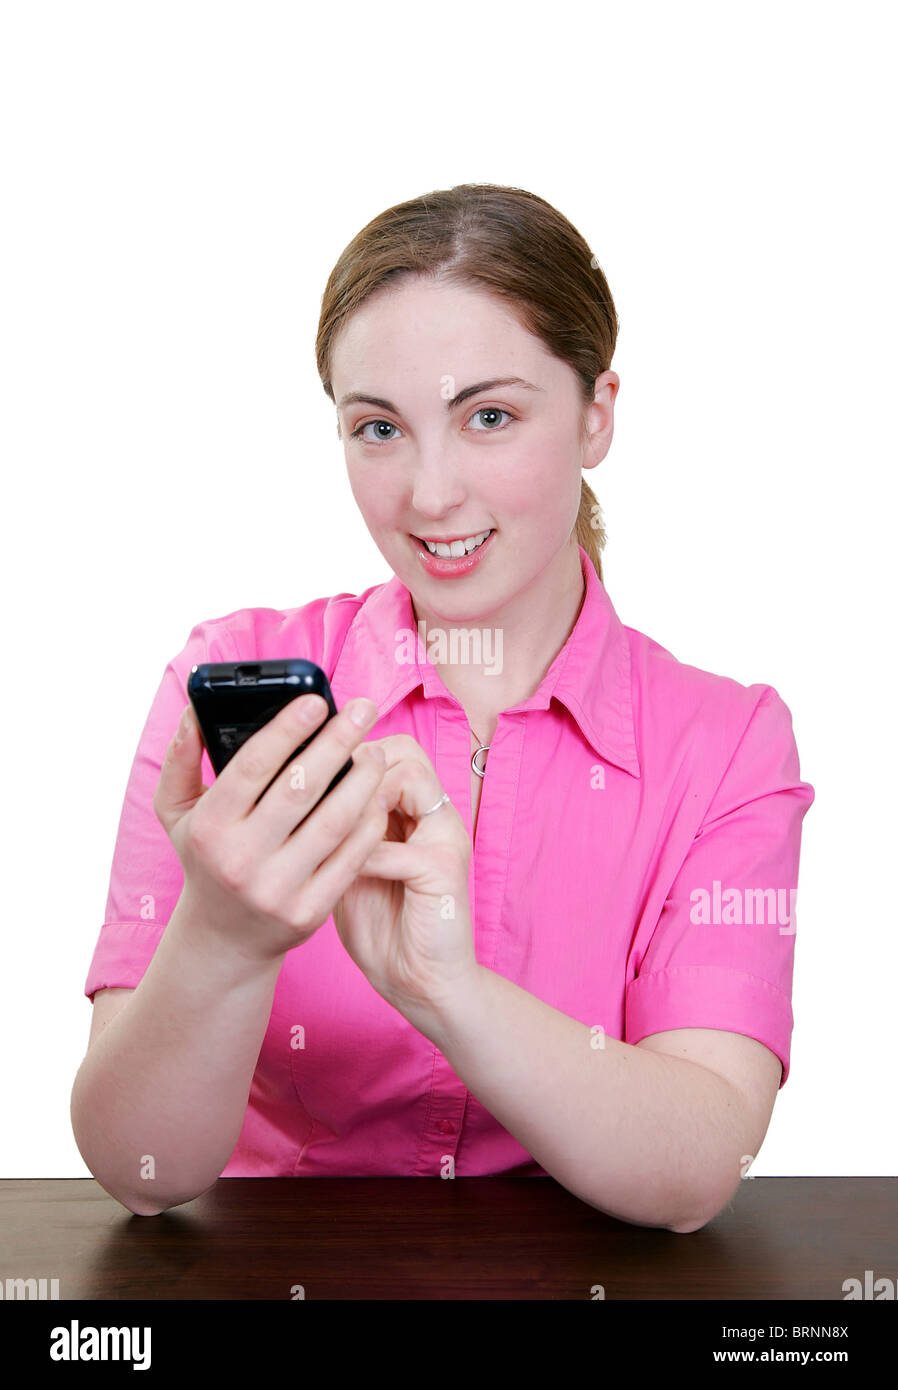 happy smiling girl using her pda personal assistant and stylus - Stock Image